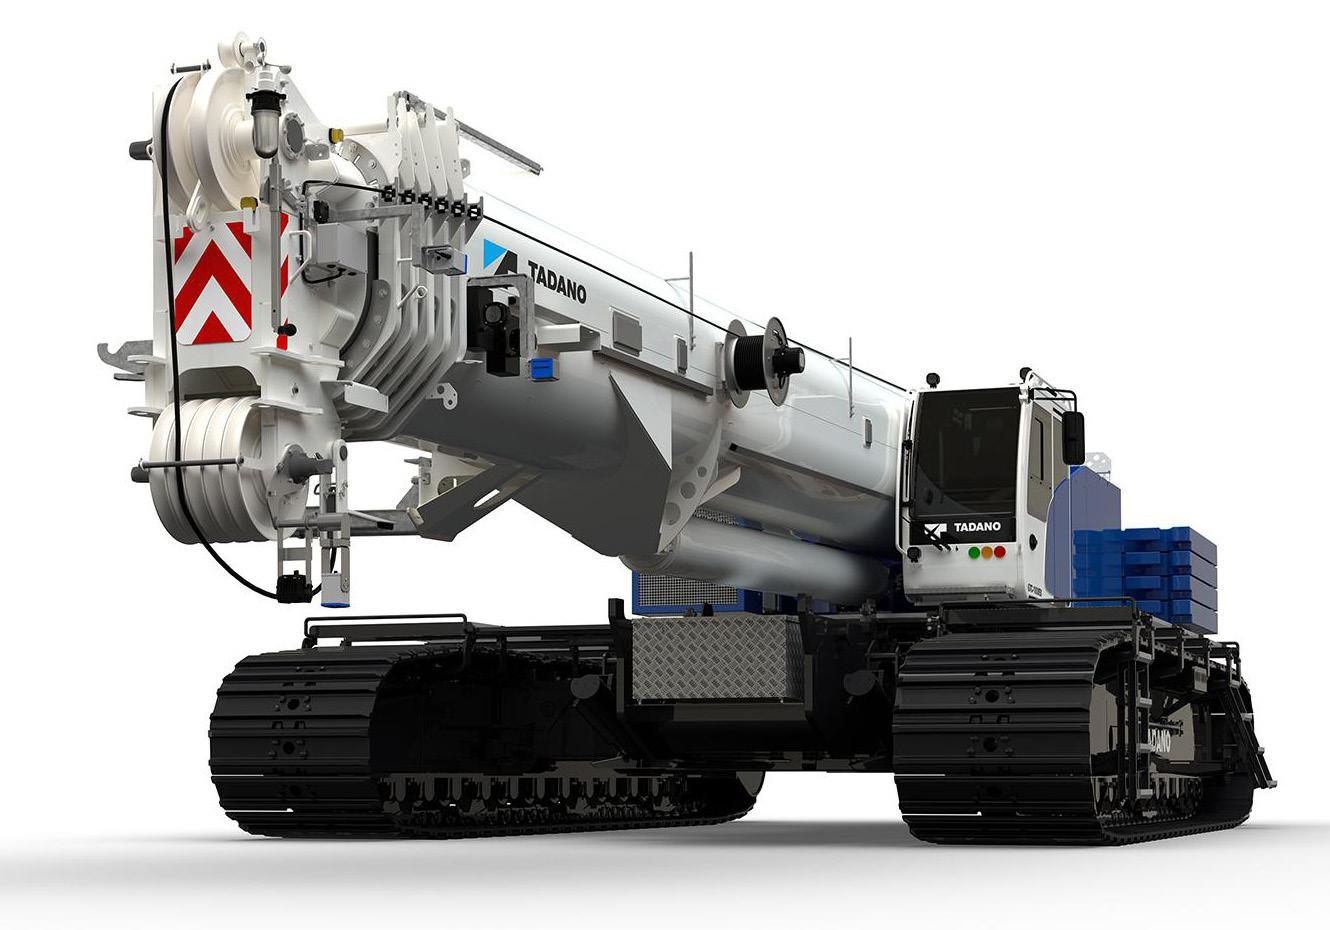 Page 10 of The new Tadano GTC-1800EX telescopic boom crawler crane